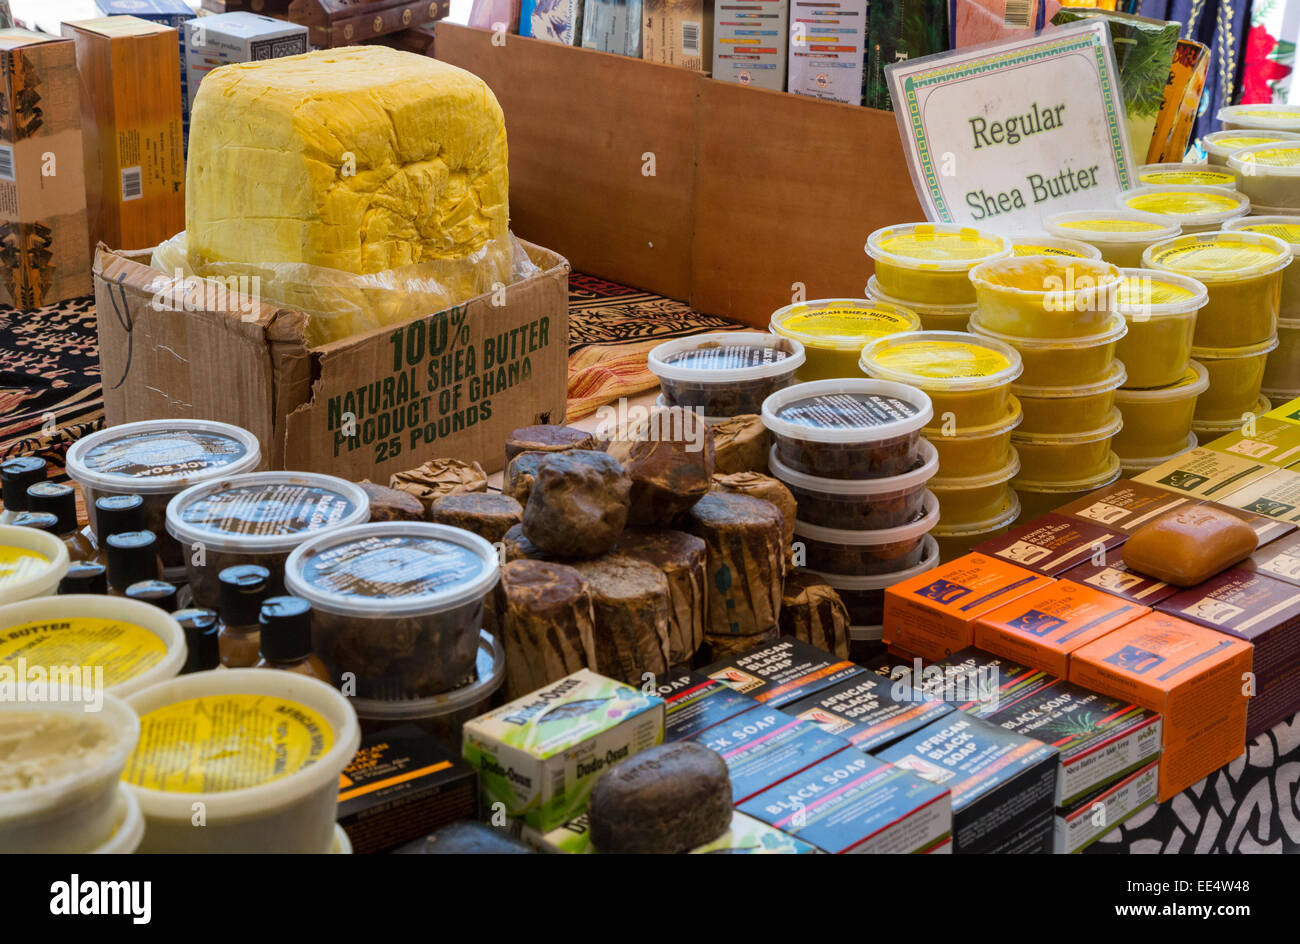 French Quarter, New Orleans, Louisiana.  African Shea Butter and Soaps for Sale in the French Market. - Stock Image